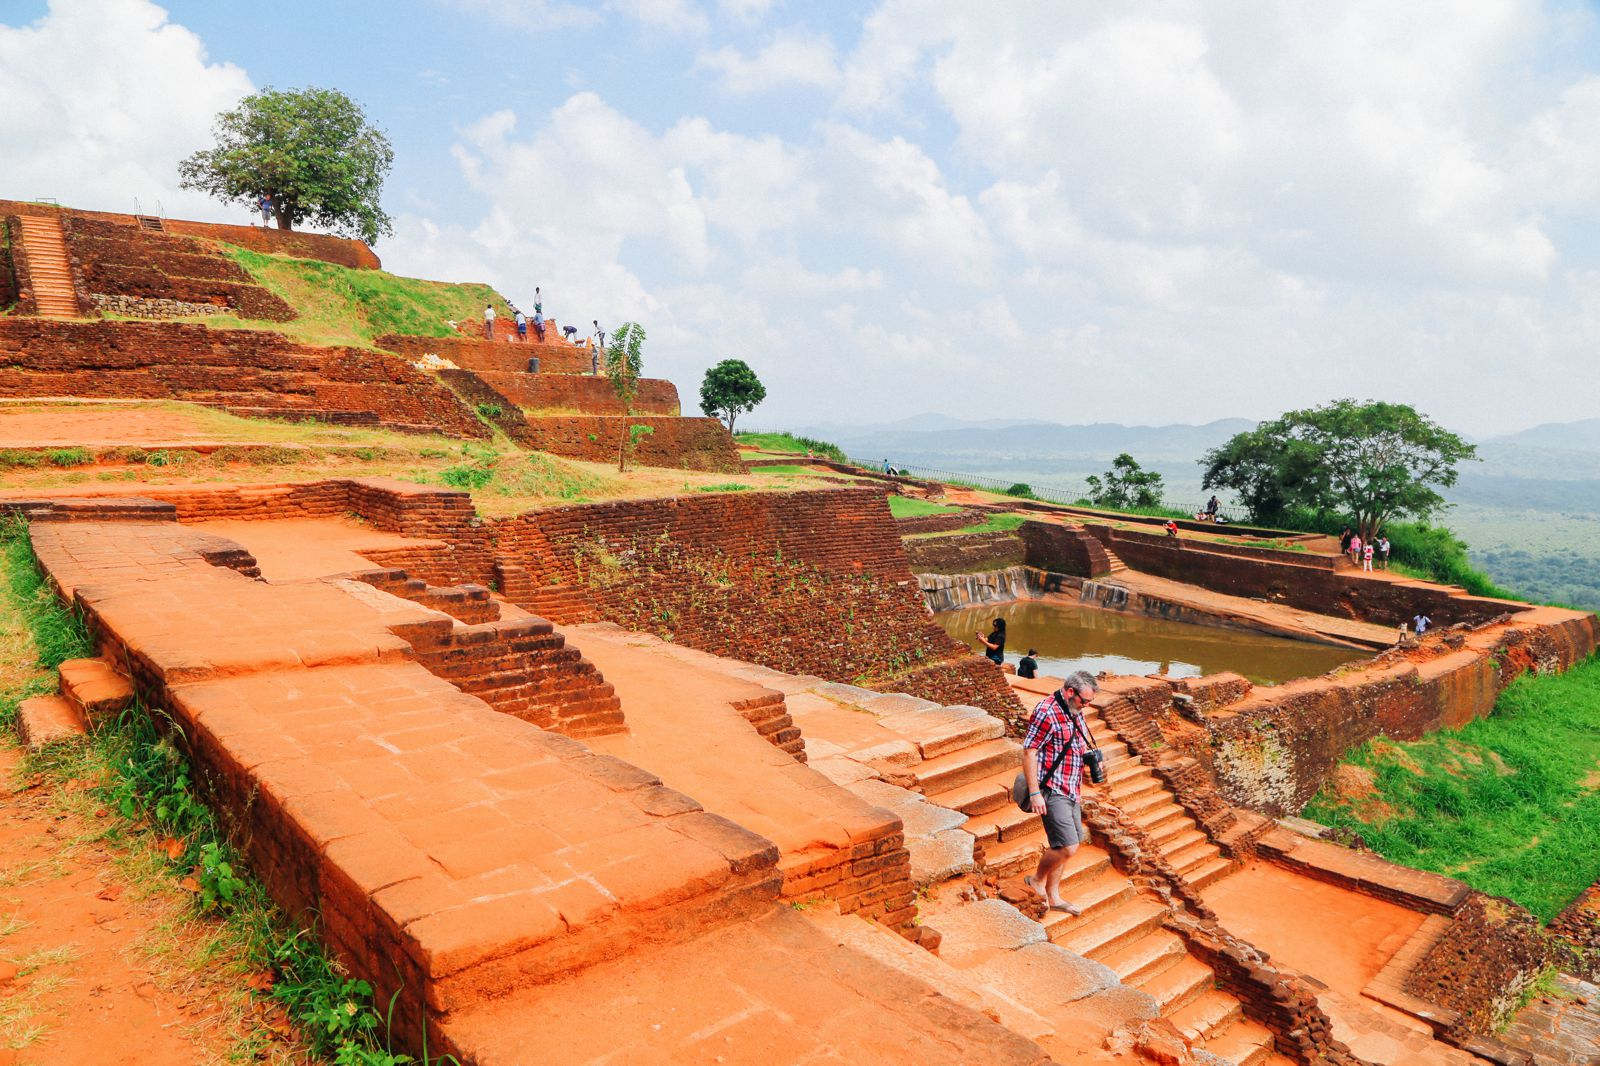 The Complete Guide To Climbing Sri Lanka's UNESCO World Heritage Site Of Sigiriya - Lion Rock (49)